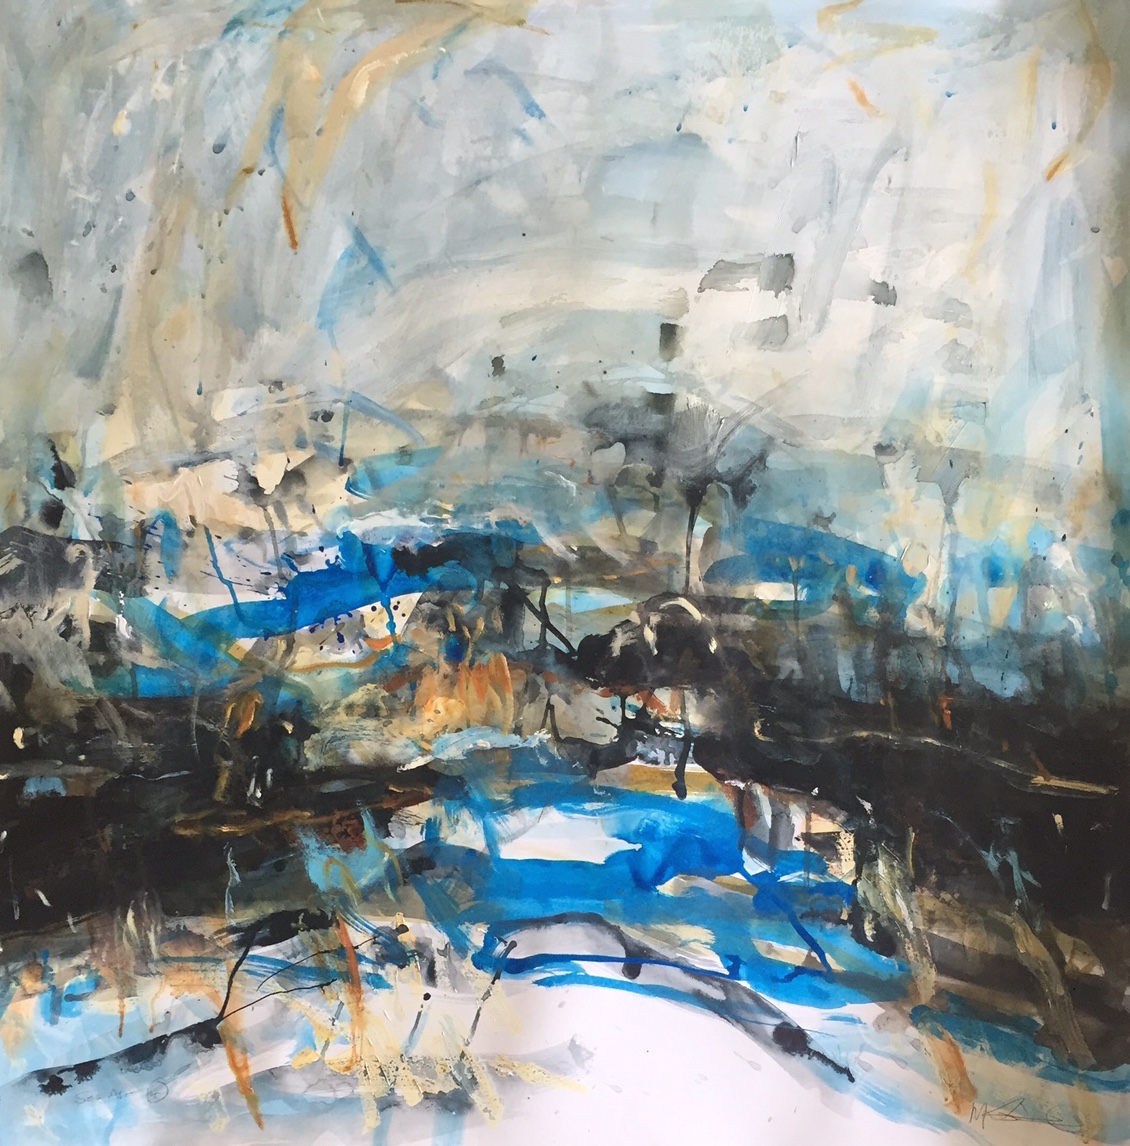 Title: Sea Air 4 Size: 90 x 90 cm Medium: Mixed media SOLD